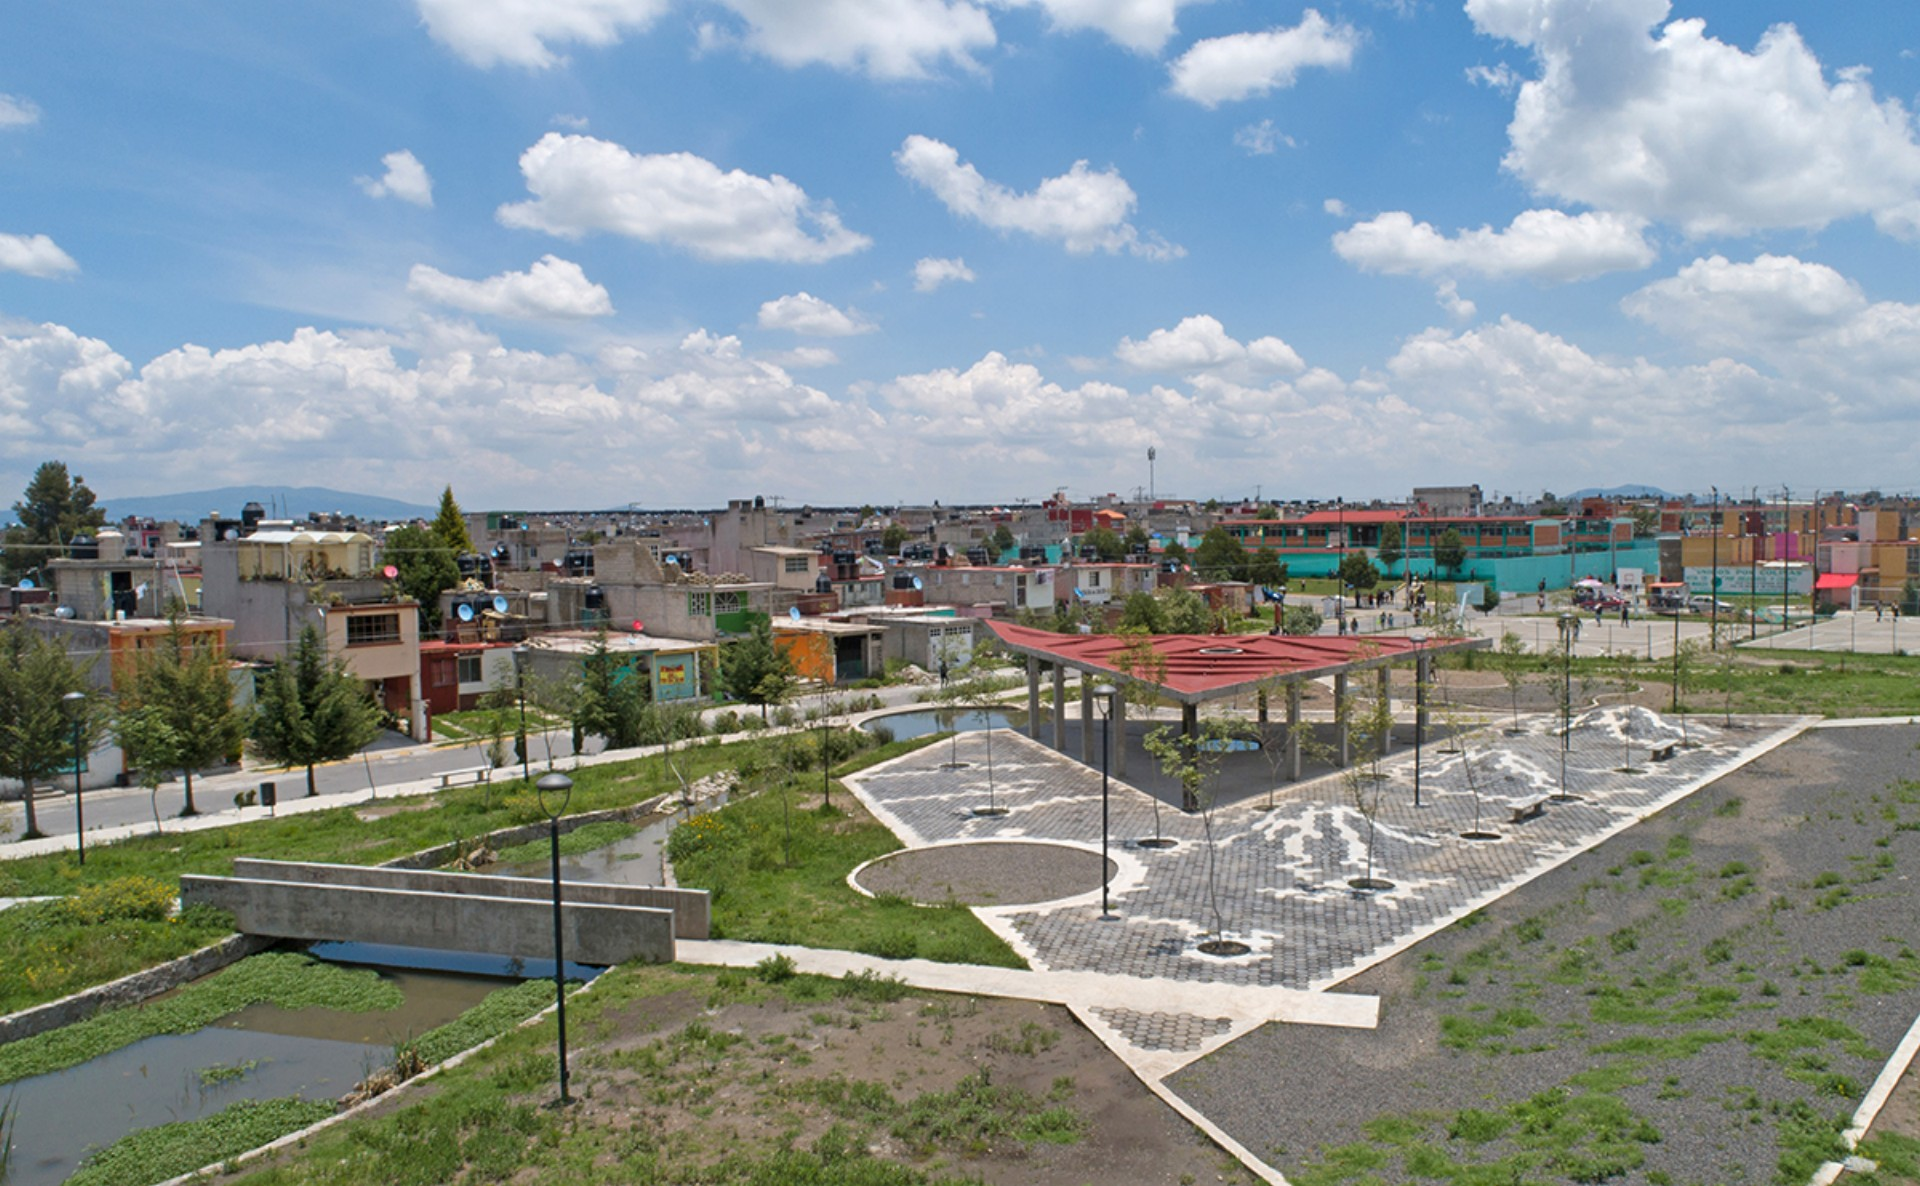 Two urban projects by architect Francisco Pardo in Mexico